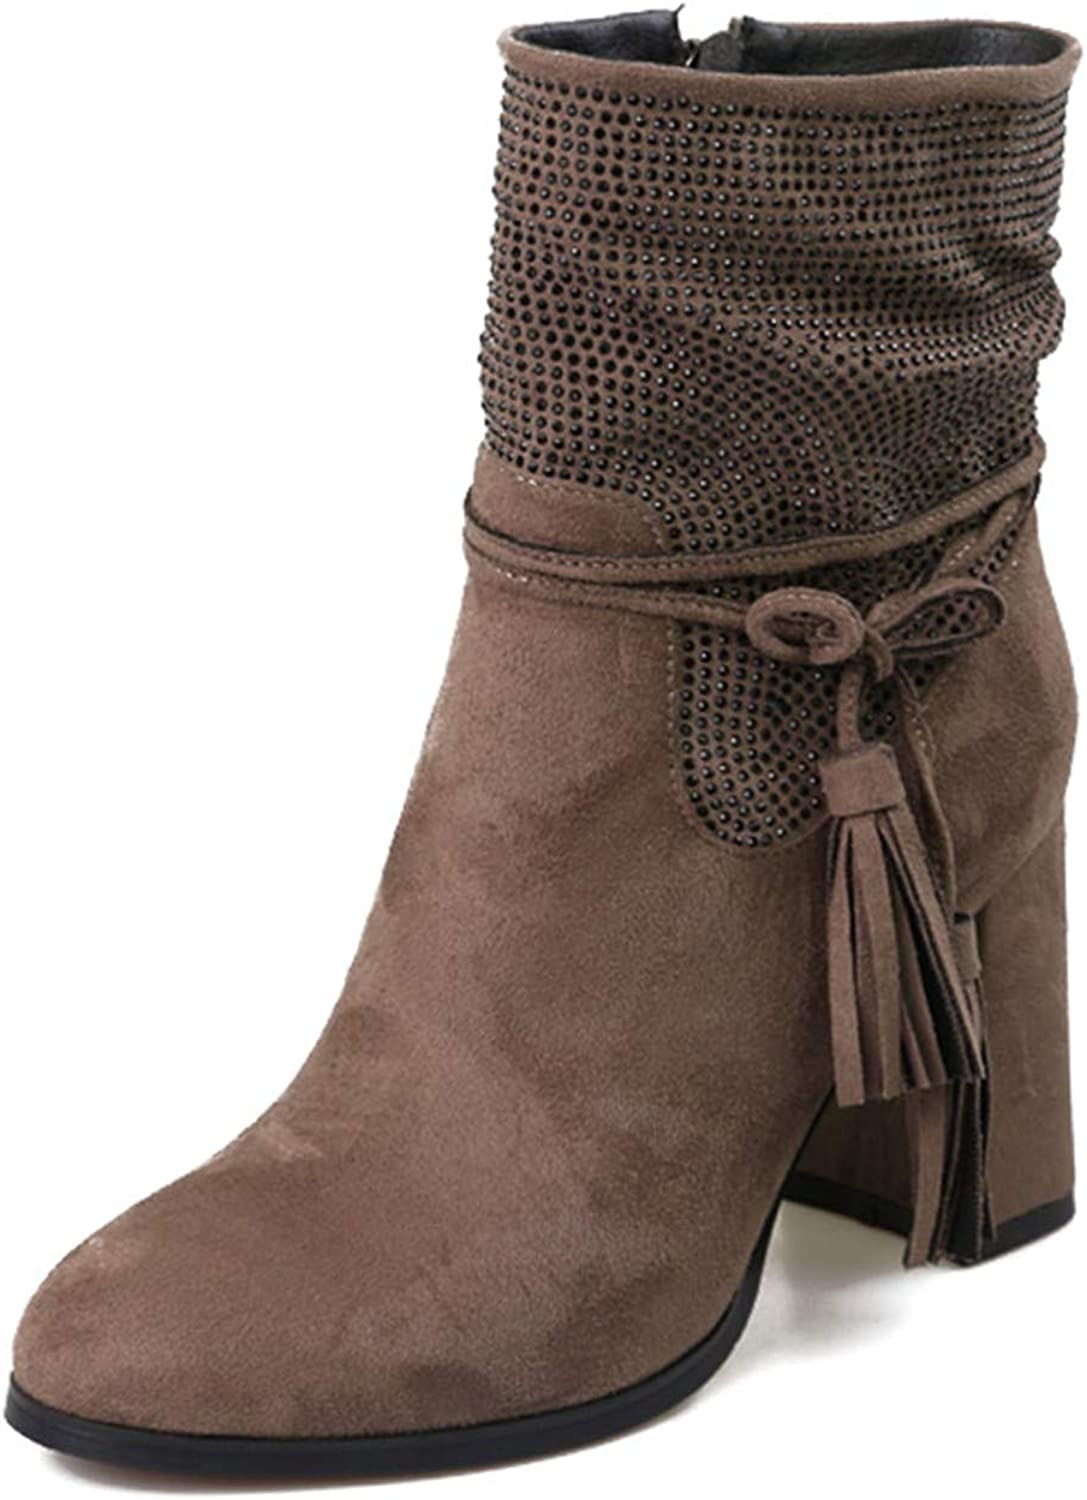 Ankle Boots Flock Zip Footwear Tassel Thick Plush Female Booties Round Toe shoes Woman Winter New